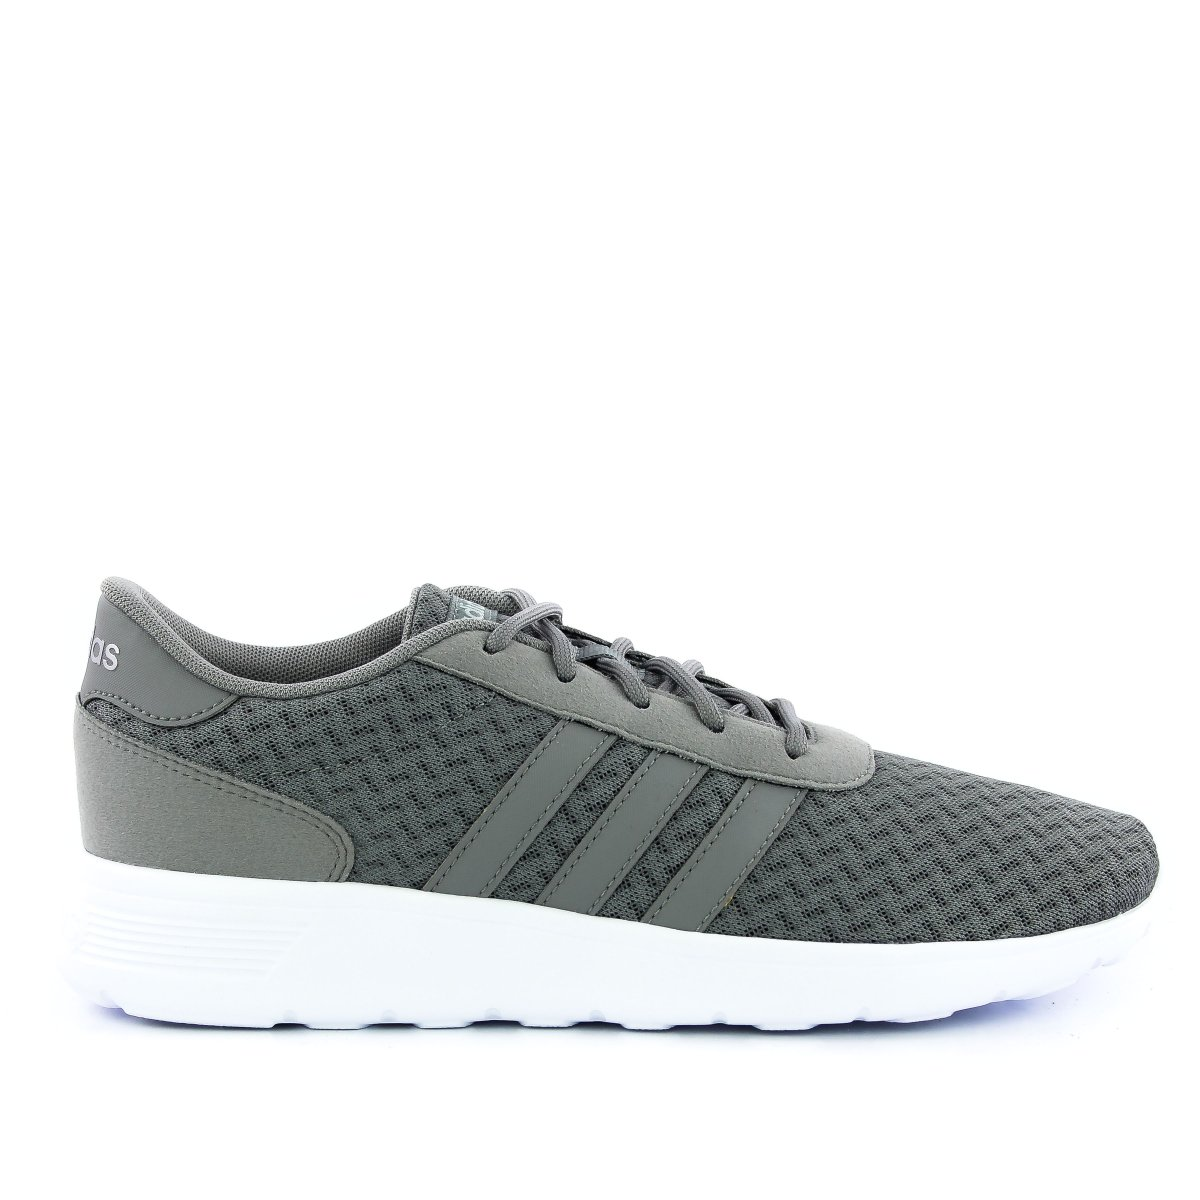 2cb44ea991 Tenis Adidas Lite Racer w Bb9832 | Cinza/branco | Coutope